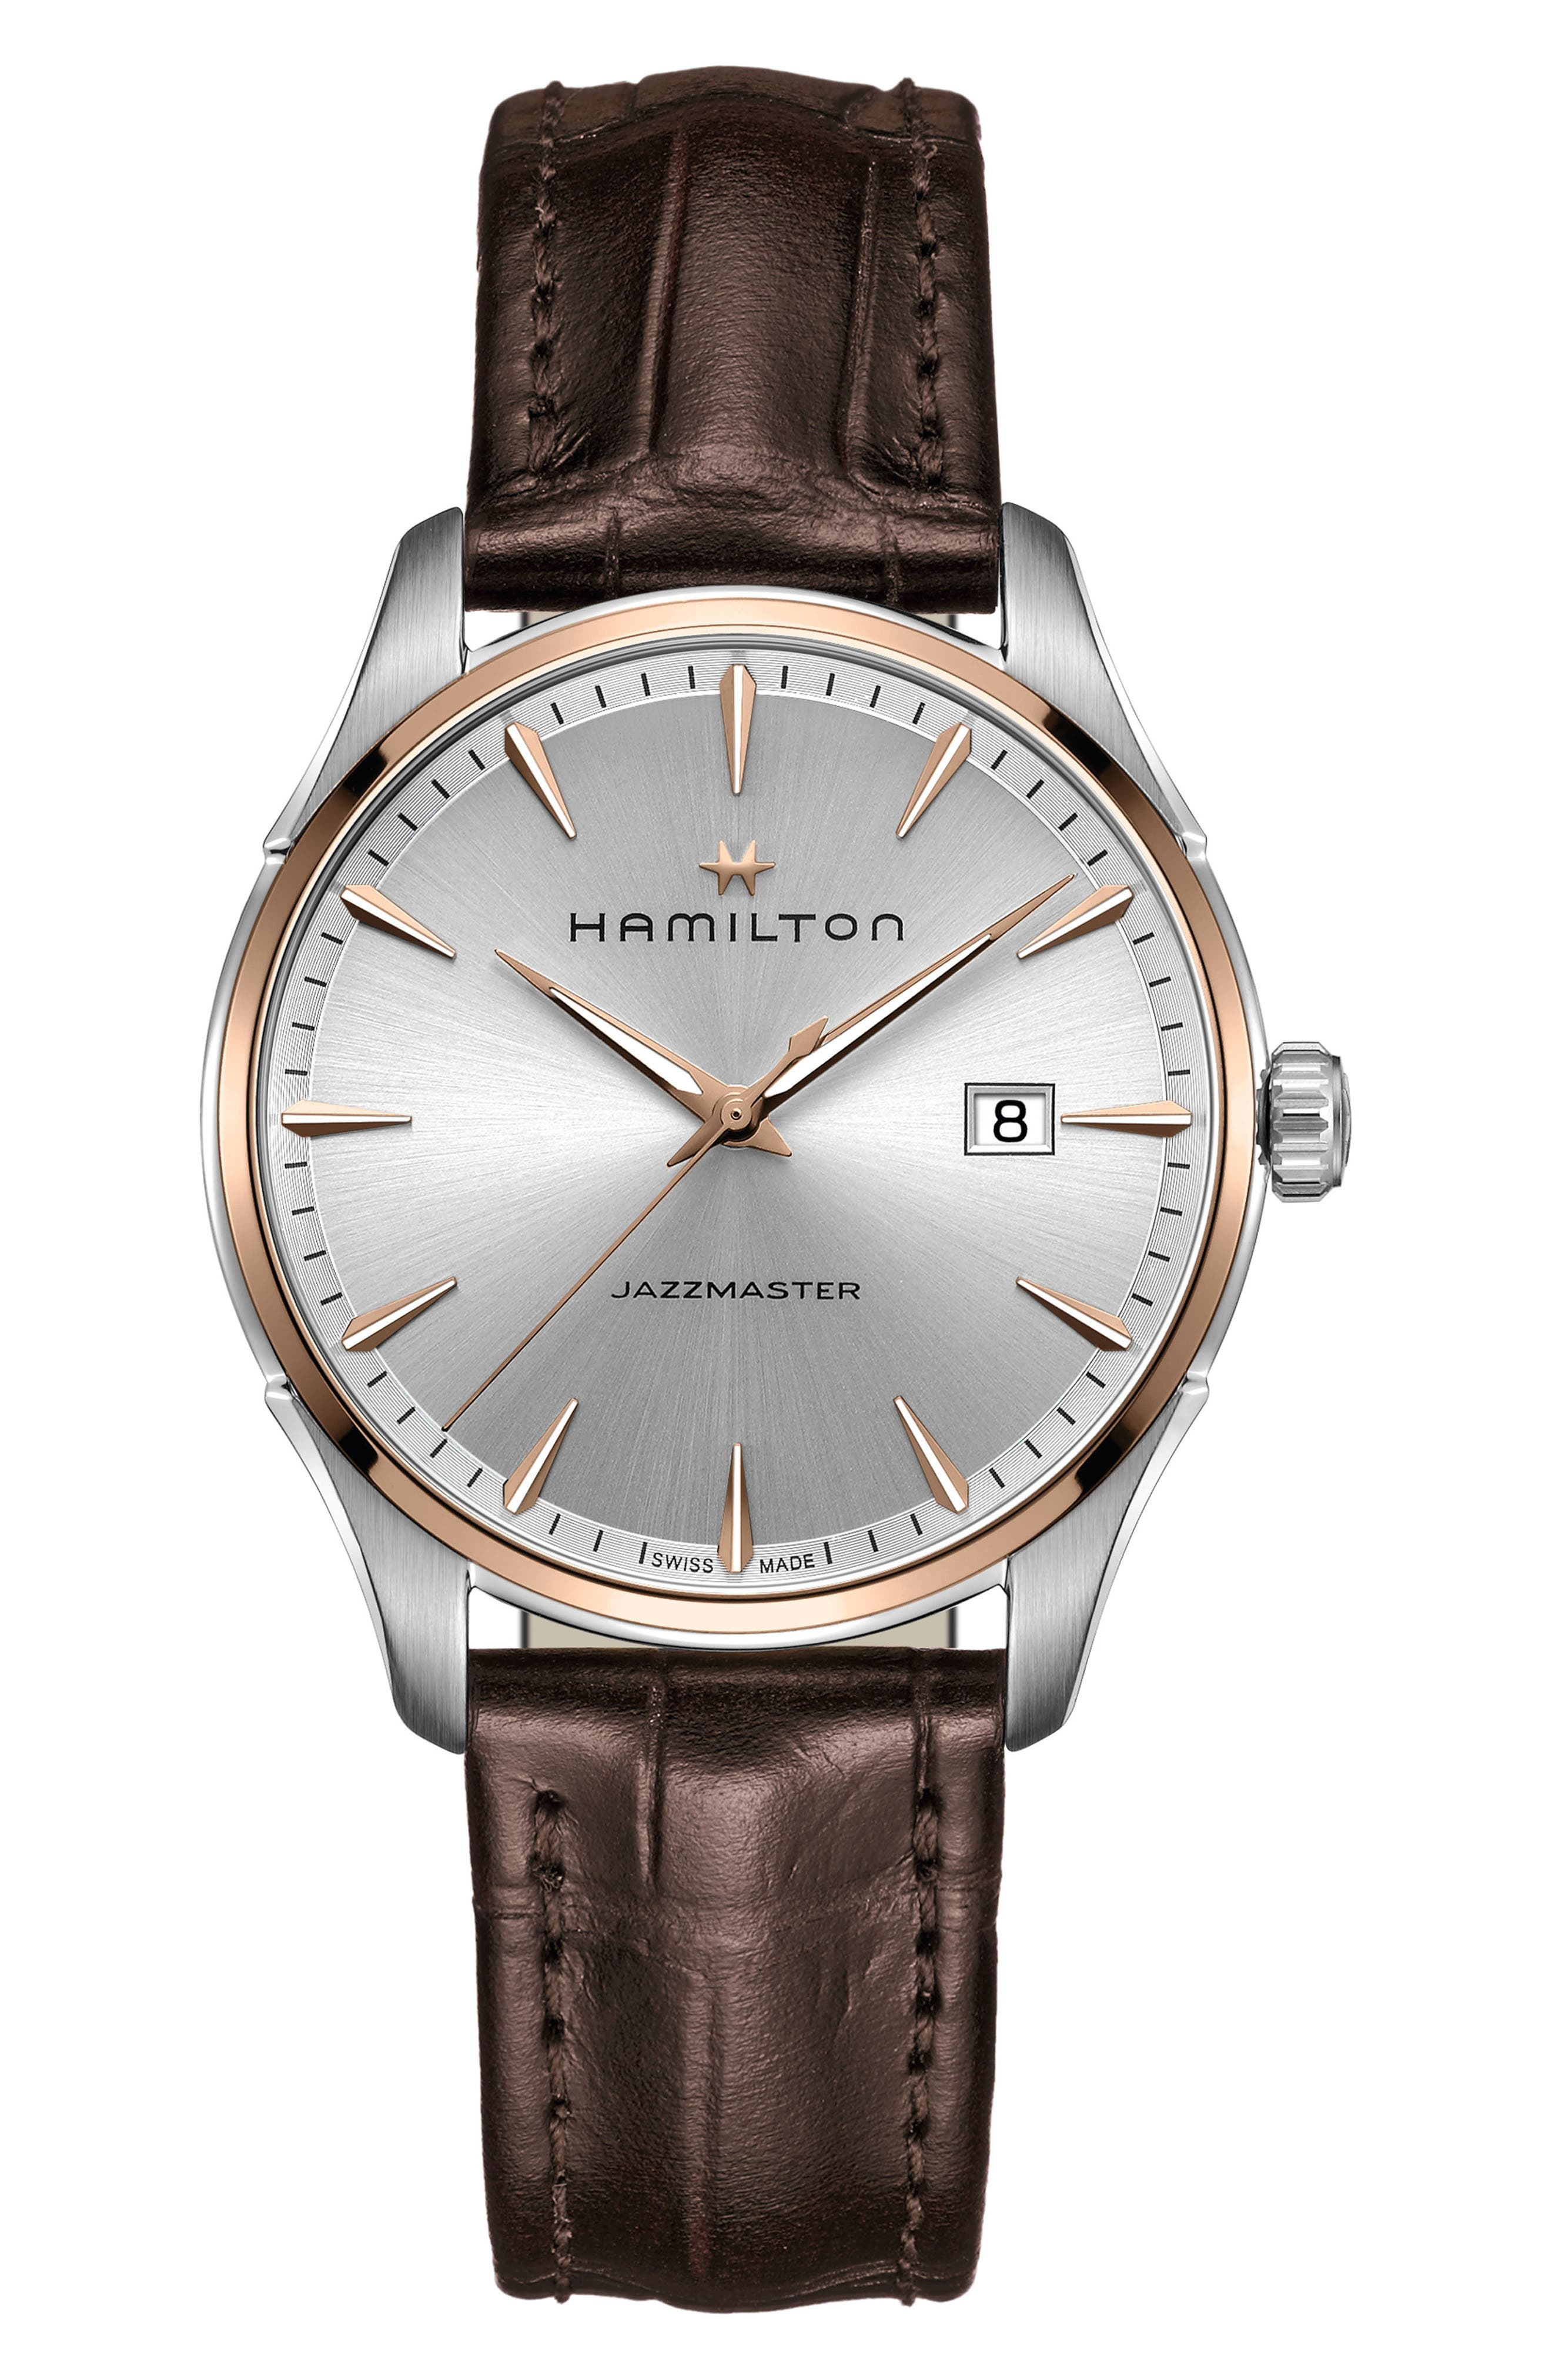 HAMILTON Jazzmaster Gent Leather Strap Watch, 40mm, Main, color, BROWN/ SILVER/ ROSE GOLD